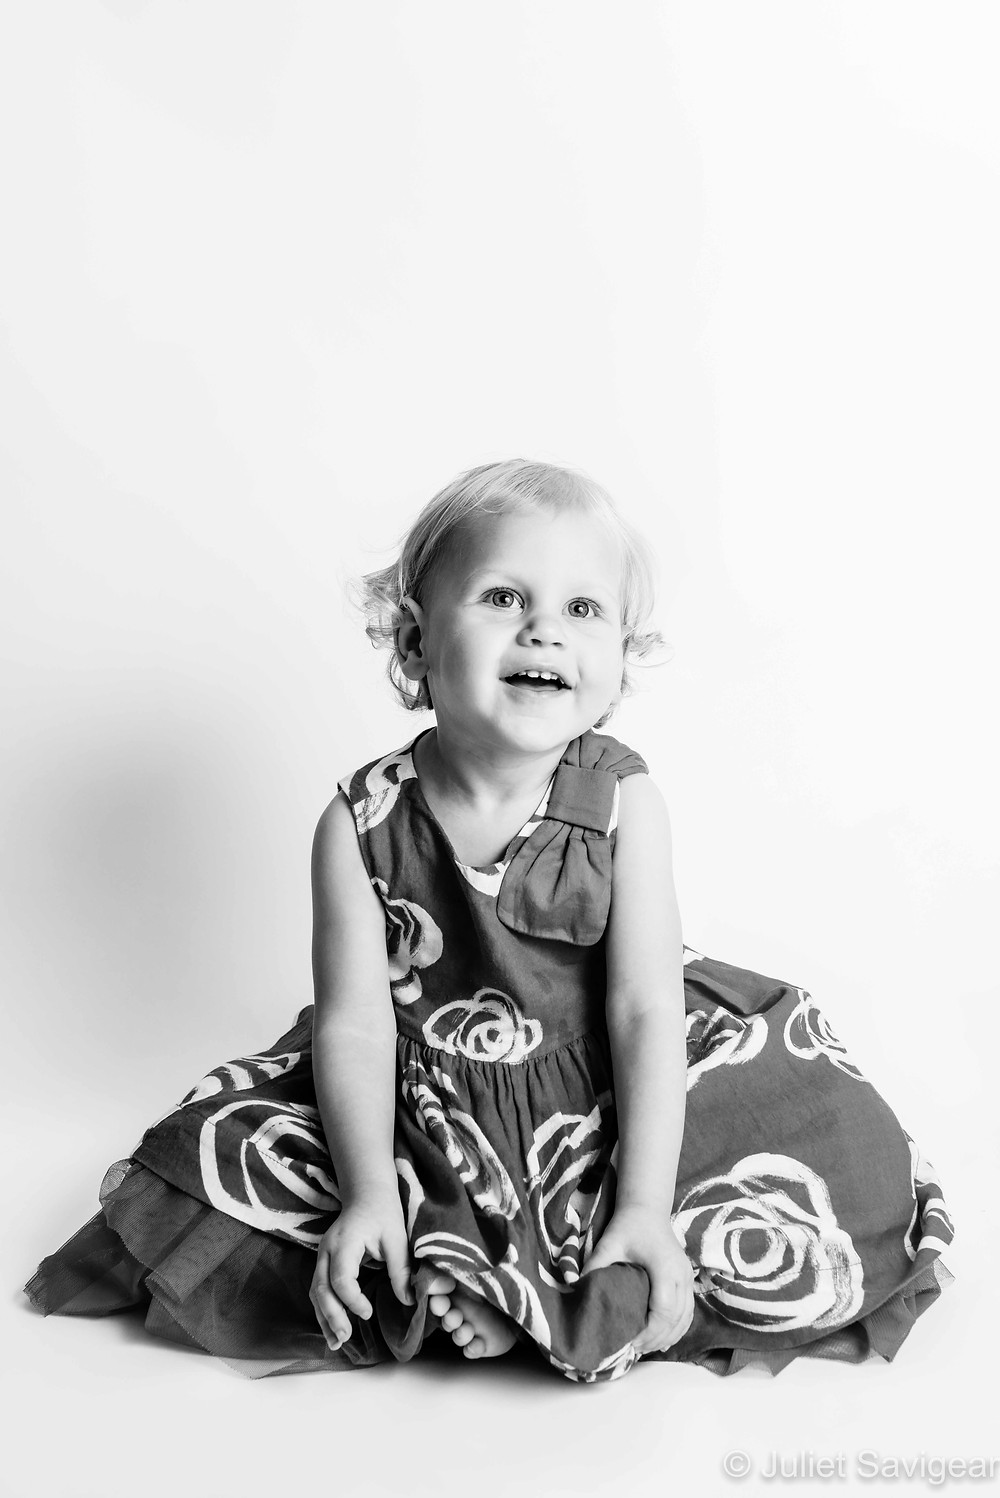 Children's studio style photography